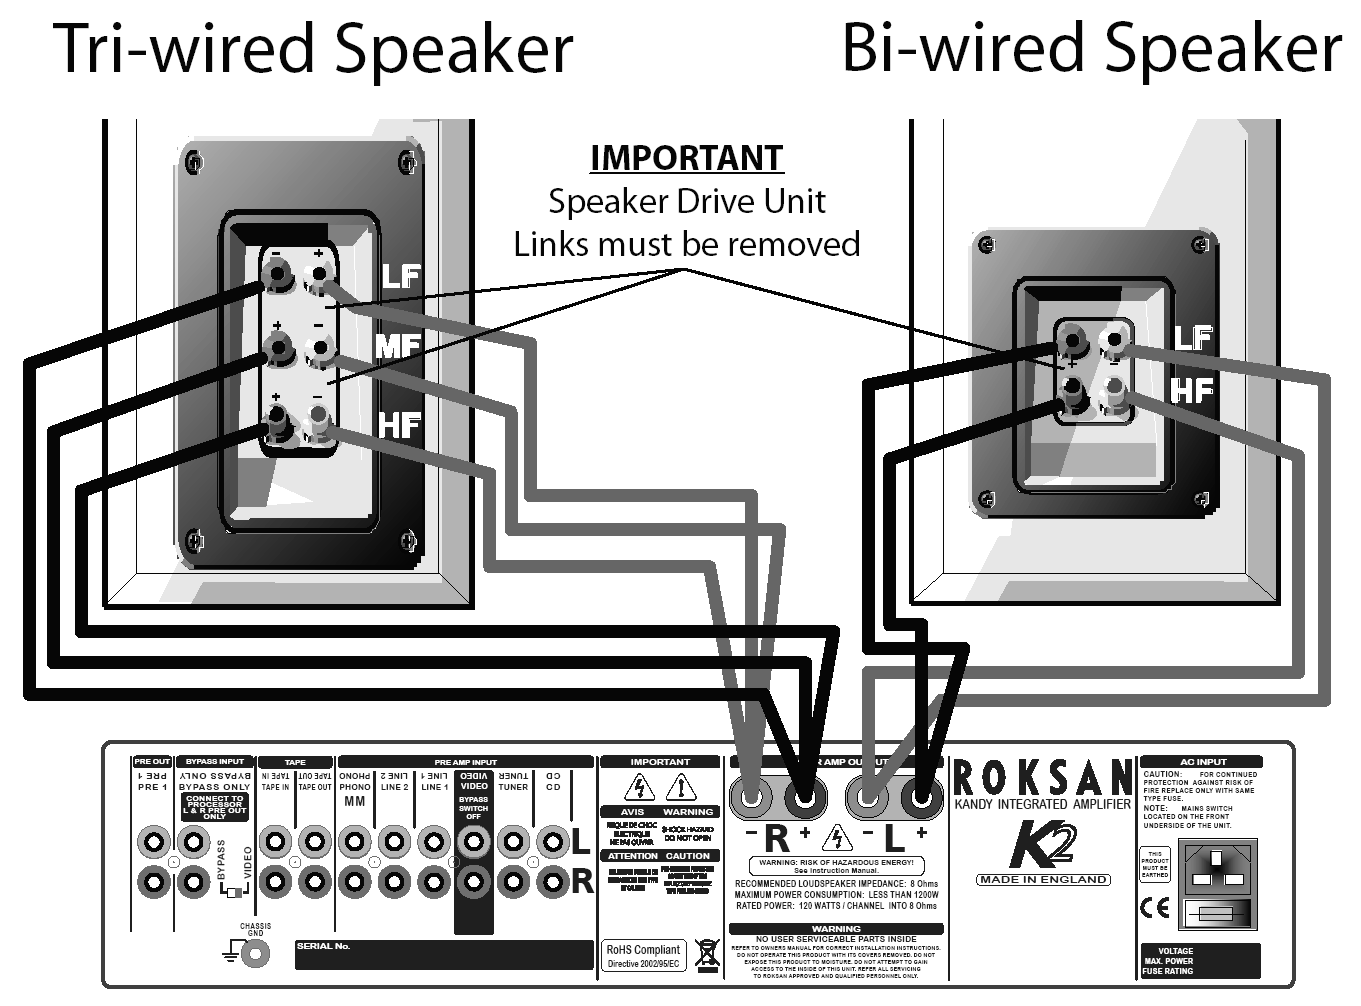 Integrated Amplifier User Manual Pdf Bi Wiring Speakers Diagram Multi Amping The Loudspeakers Setup If Utilise More Than One Drive Unit With